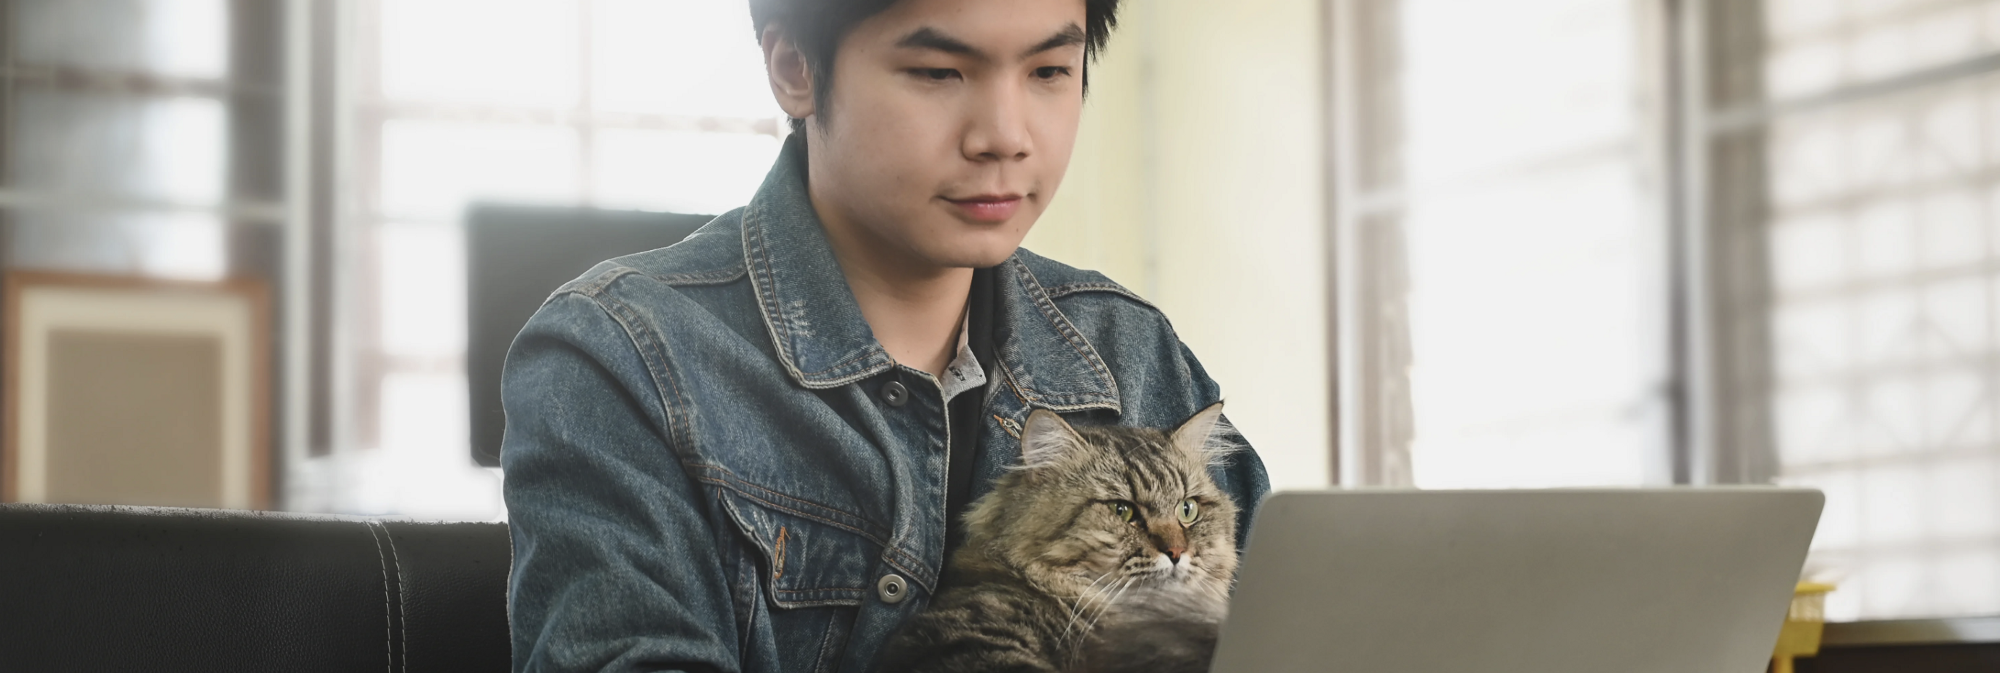 Man in denim jacket sits behind laptop with grey striped cat on his lap.